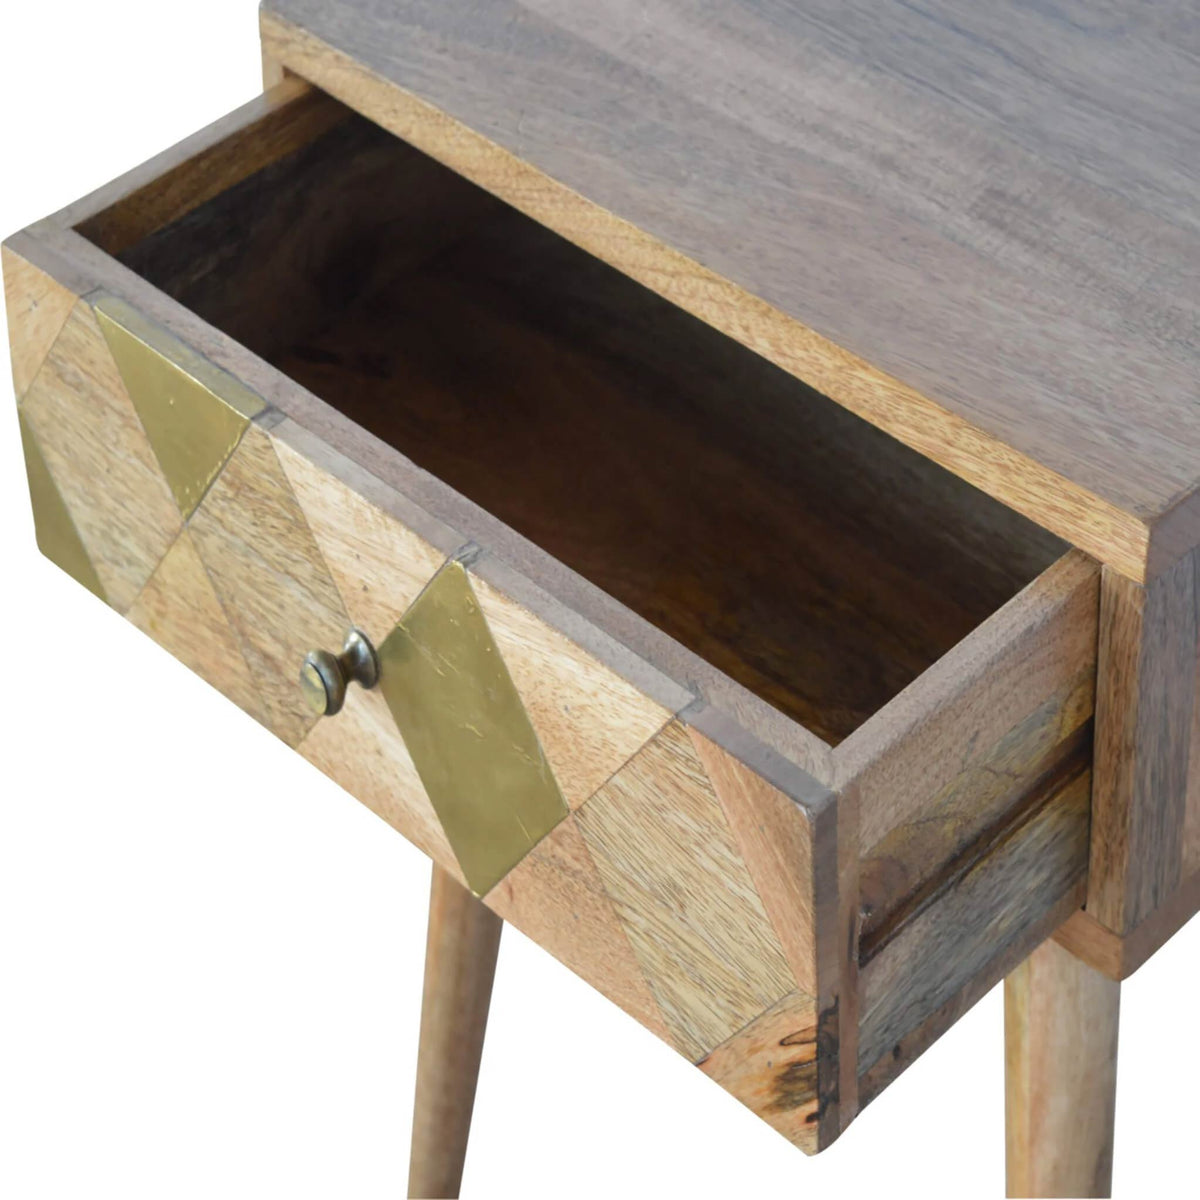 Artisan Retro Bedside Side Table with Brass Insert - drawer open